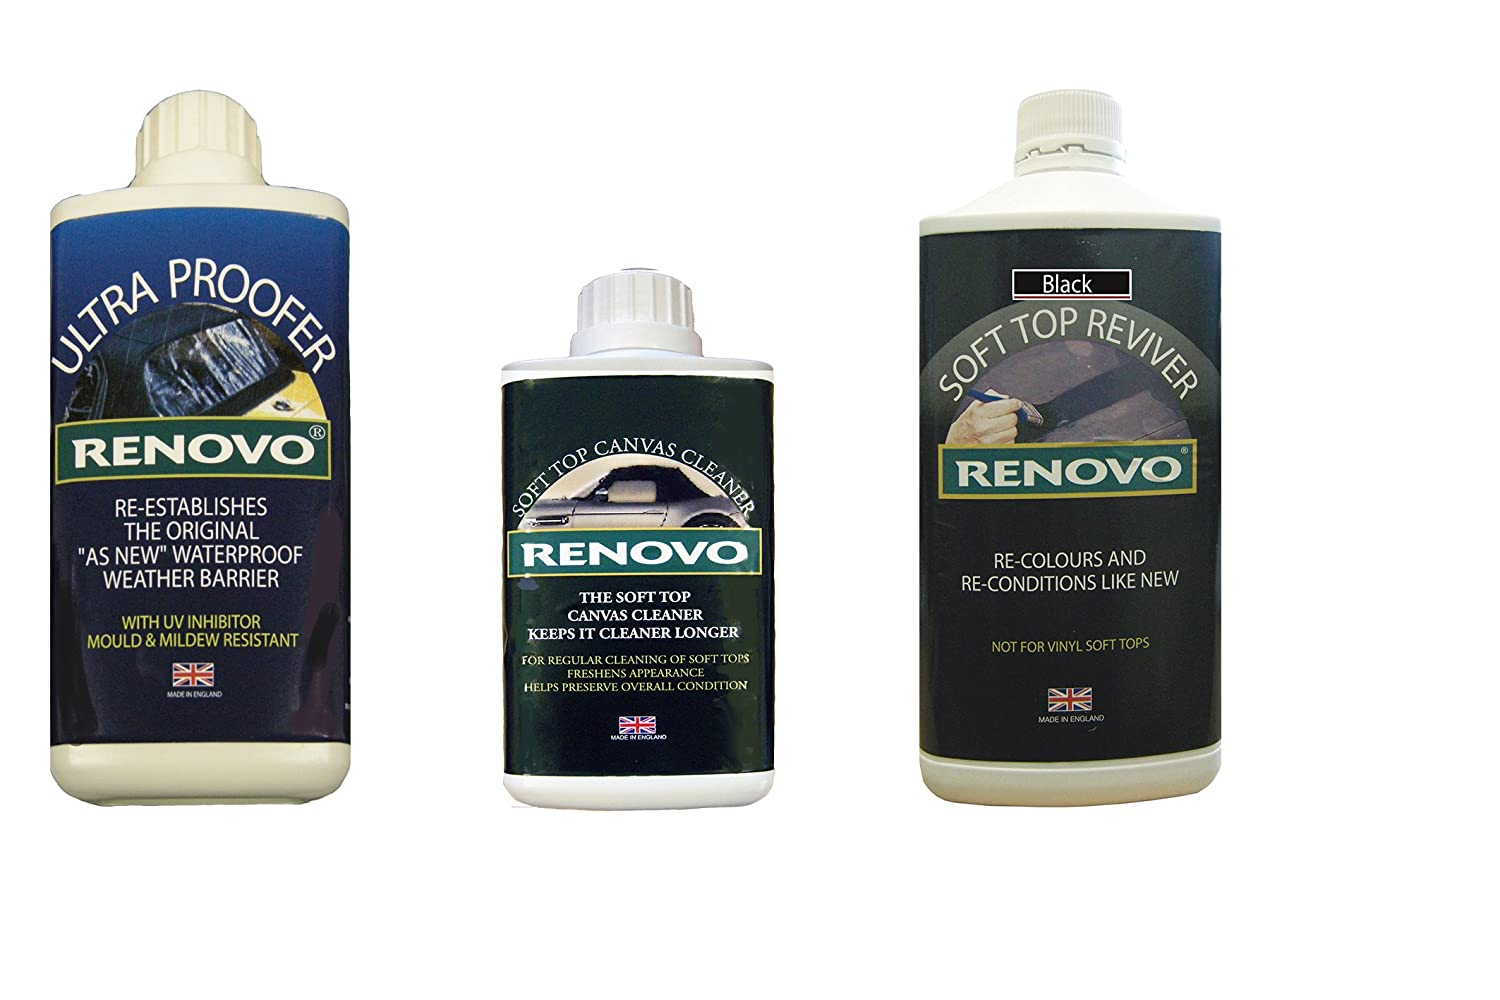 Renovo REN-KIT1 Triple Cleaning Kit includes Soft Top Revivier/Soft Top Ultra Proofer/Soft Top Canvas Cleaner, Black Renovo International